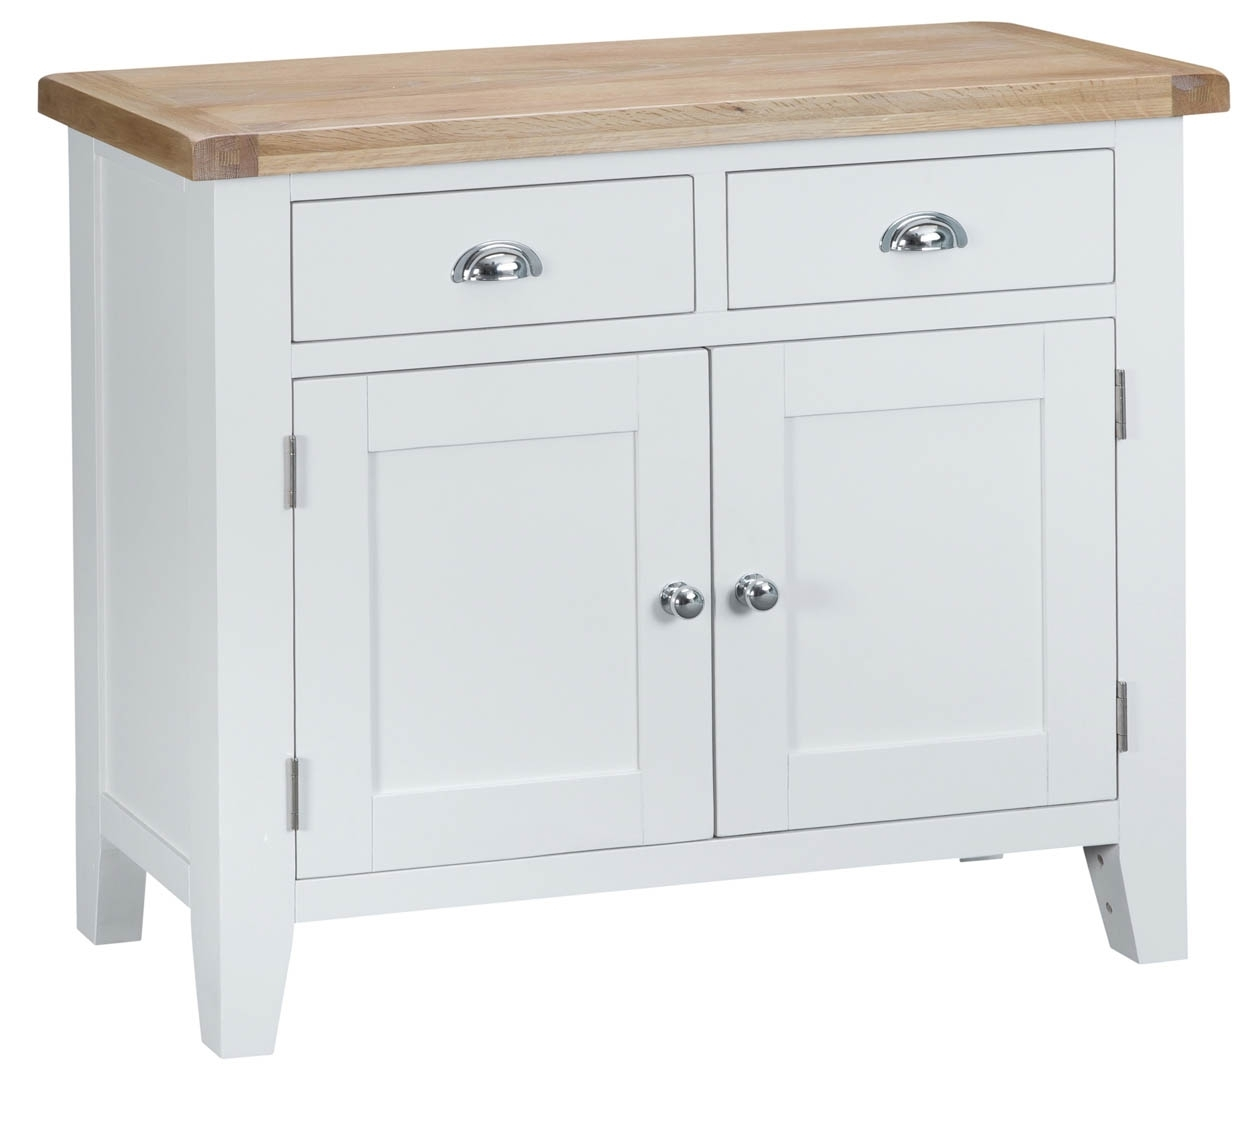 Woodbridge 2 Door White Sideboard | Fully Assembled | Oak World With Regard To 3 Drawer/2 Door White Wash Sideboards (Photo 14 of 30)